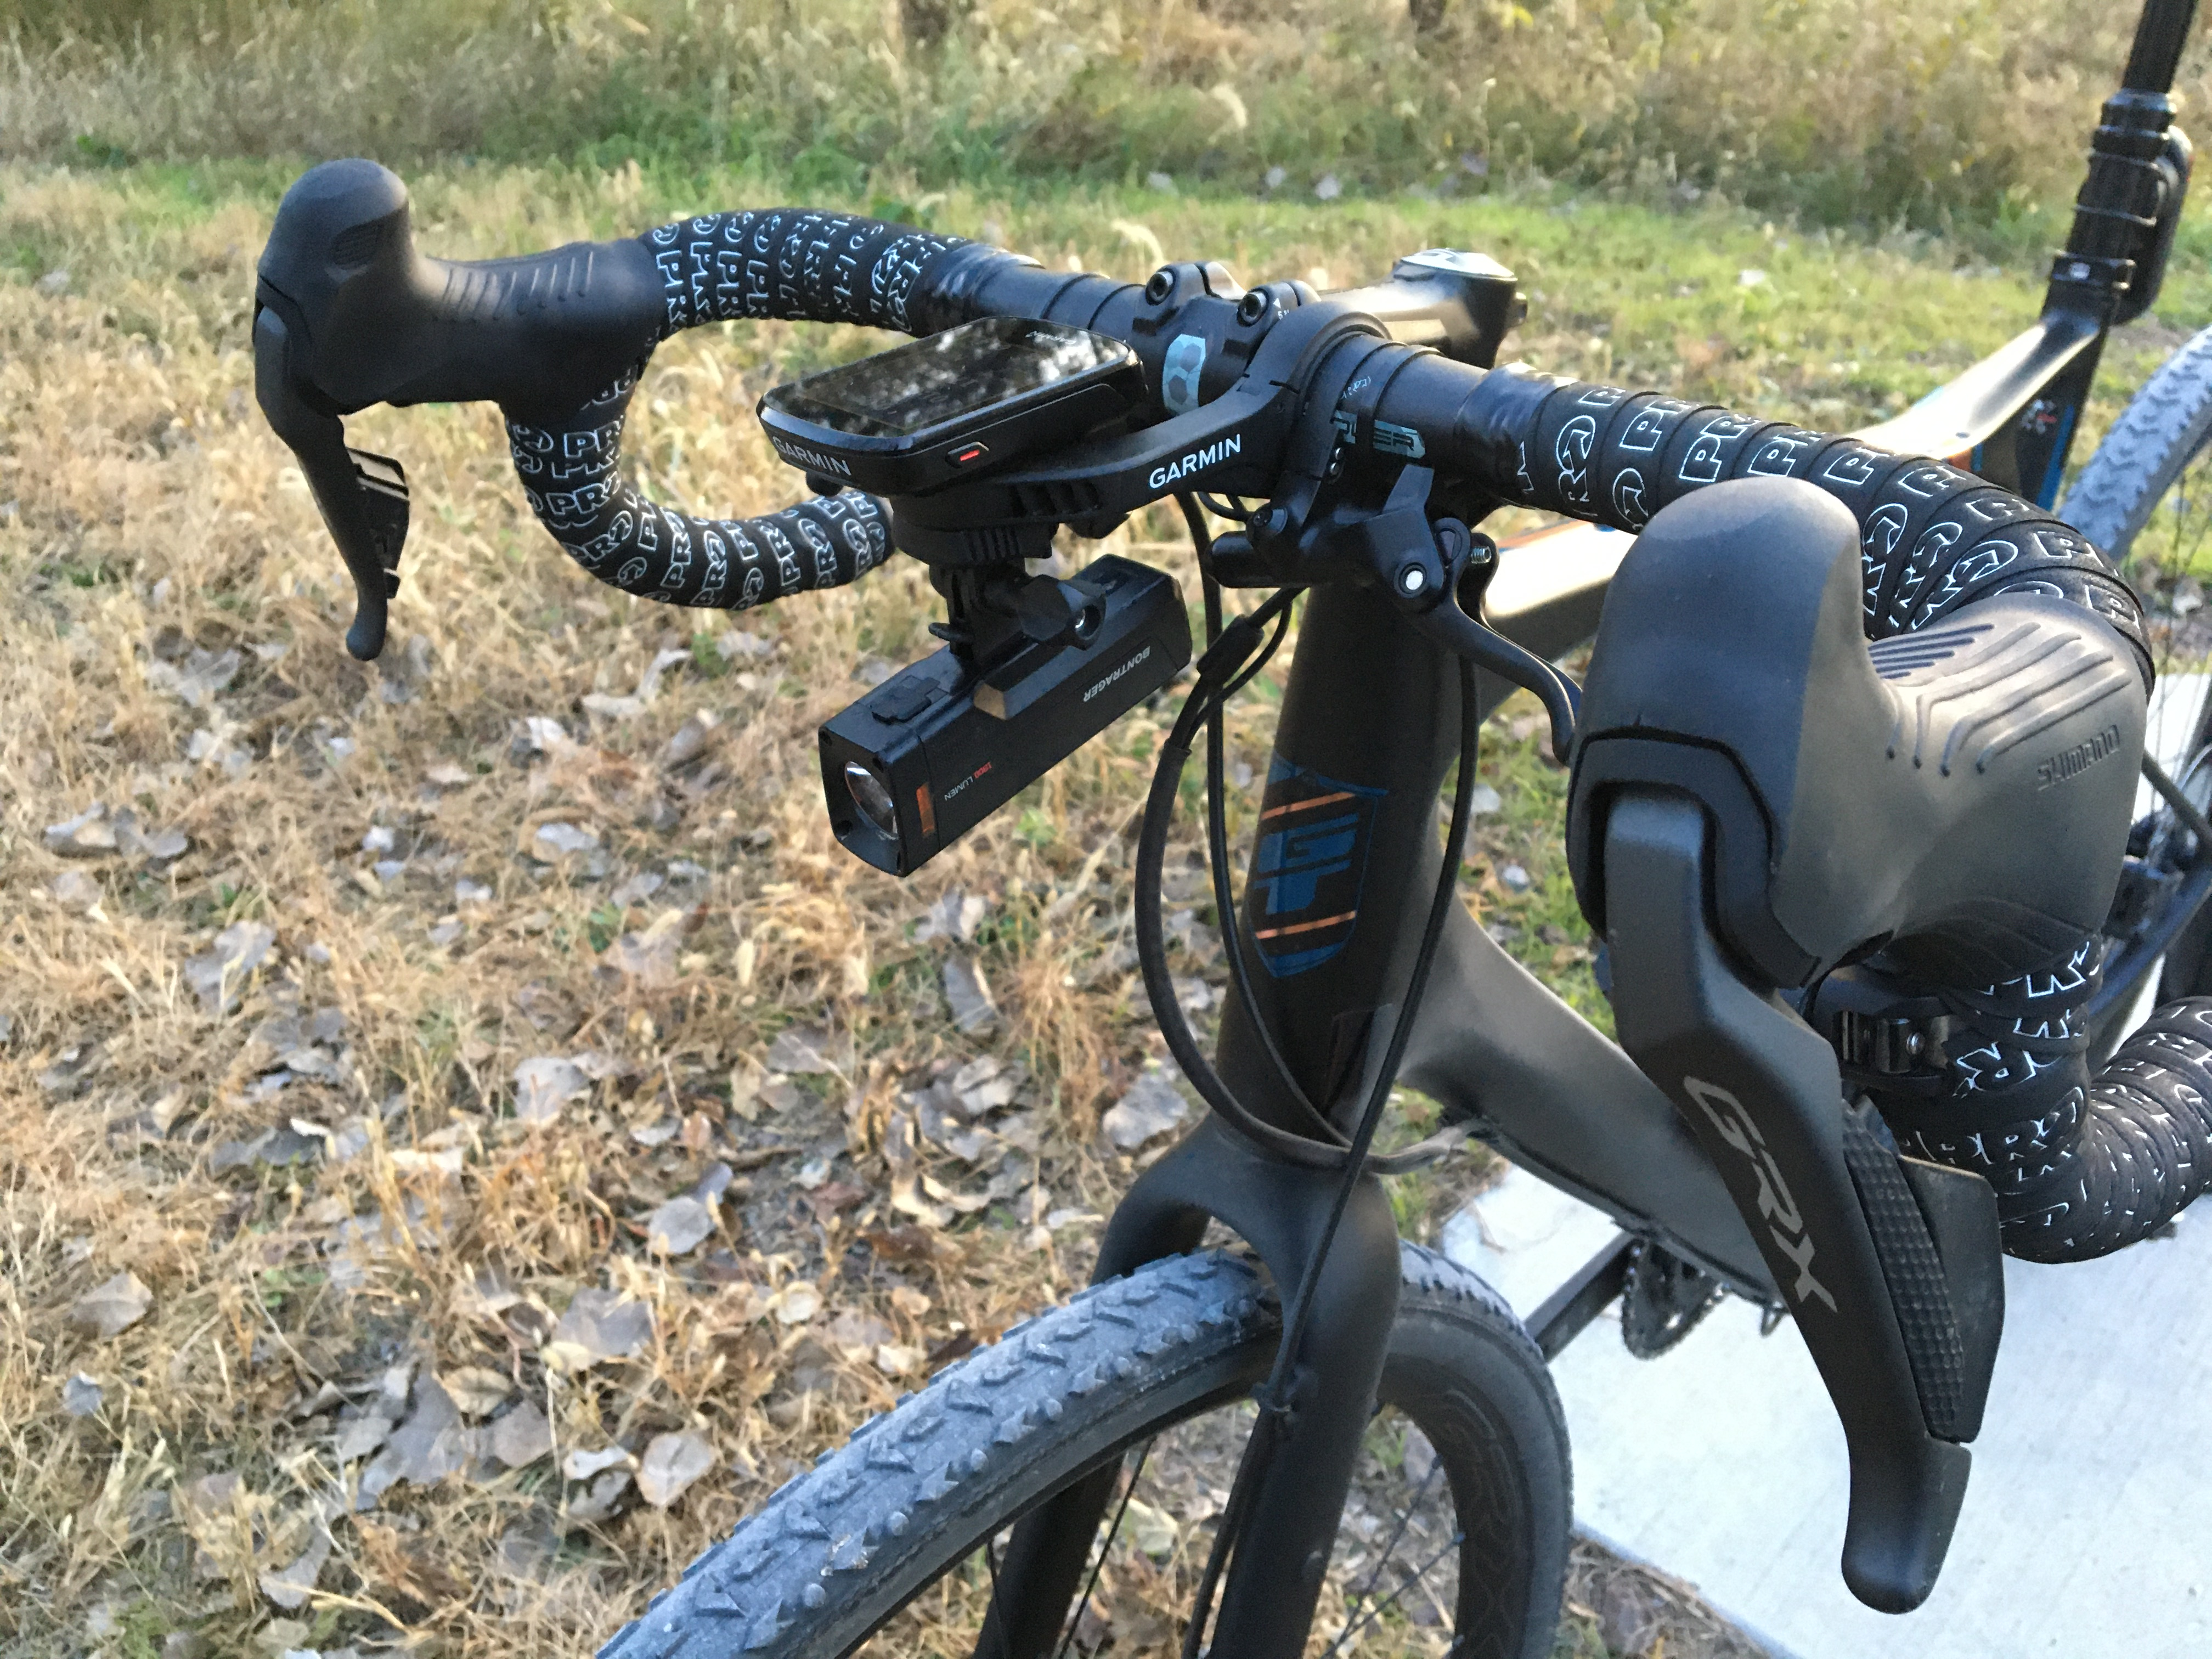 Shimano GRX Di2 Components: Getting Rolling